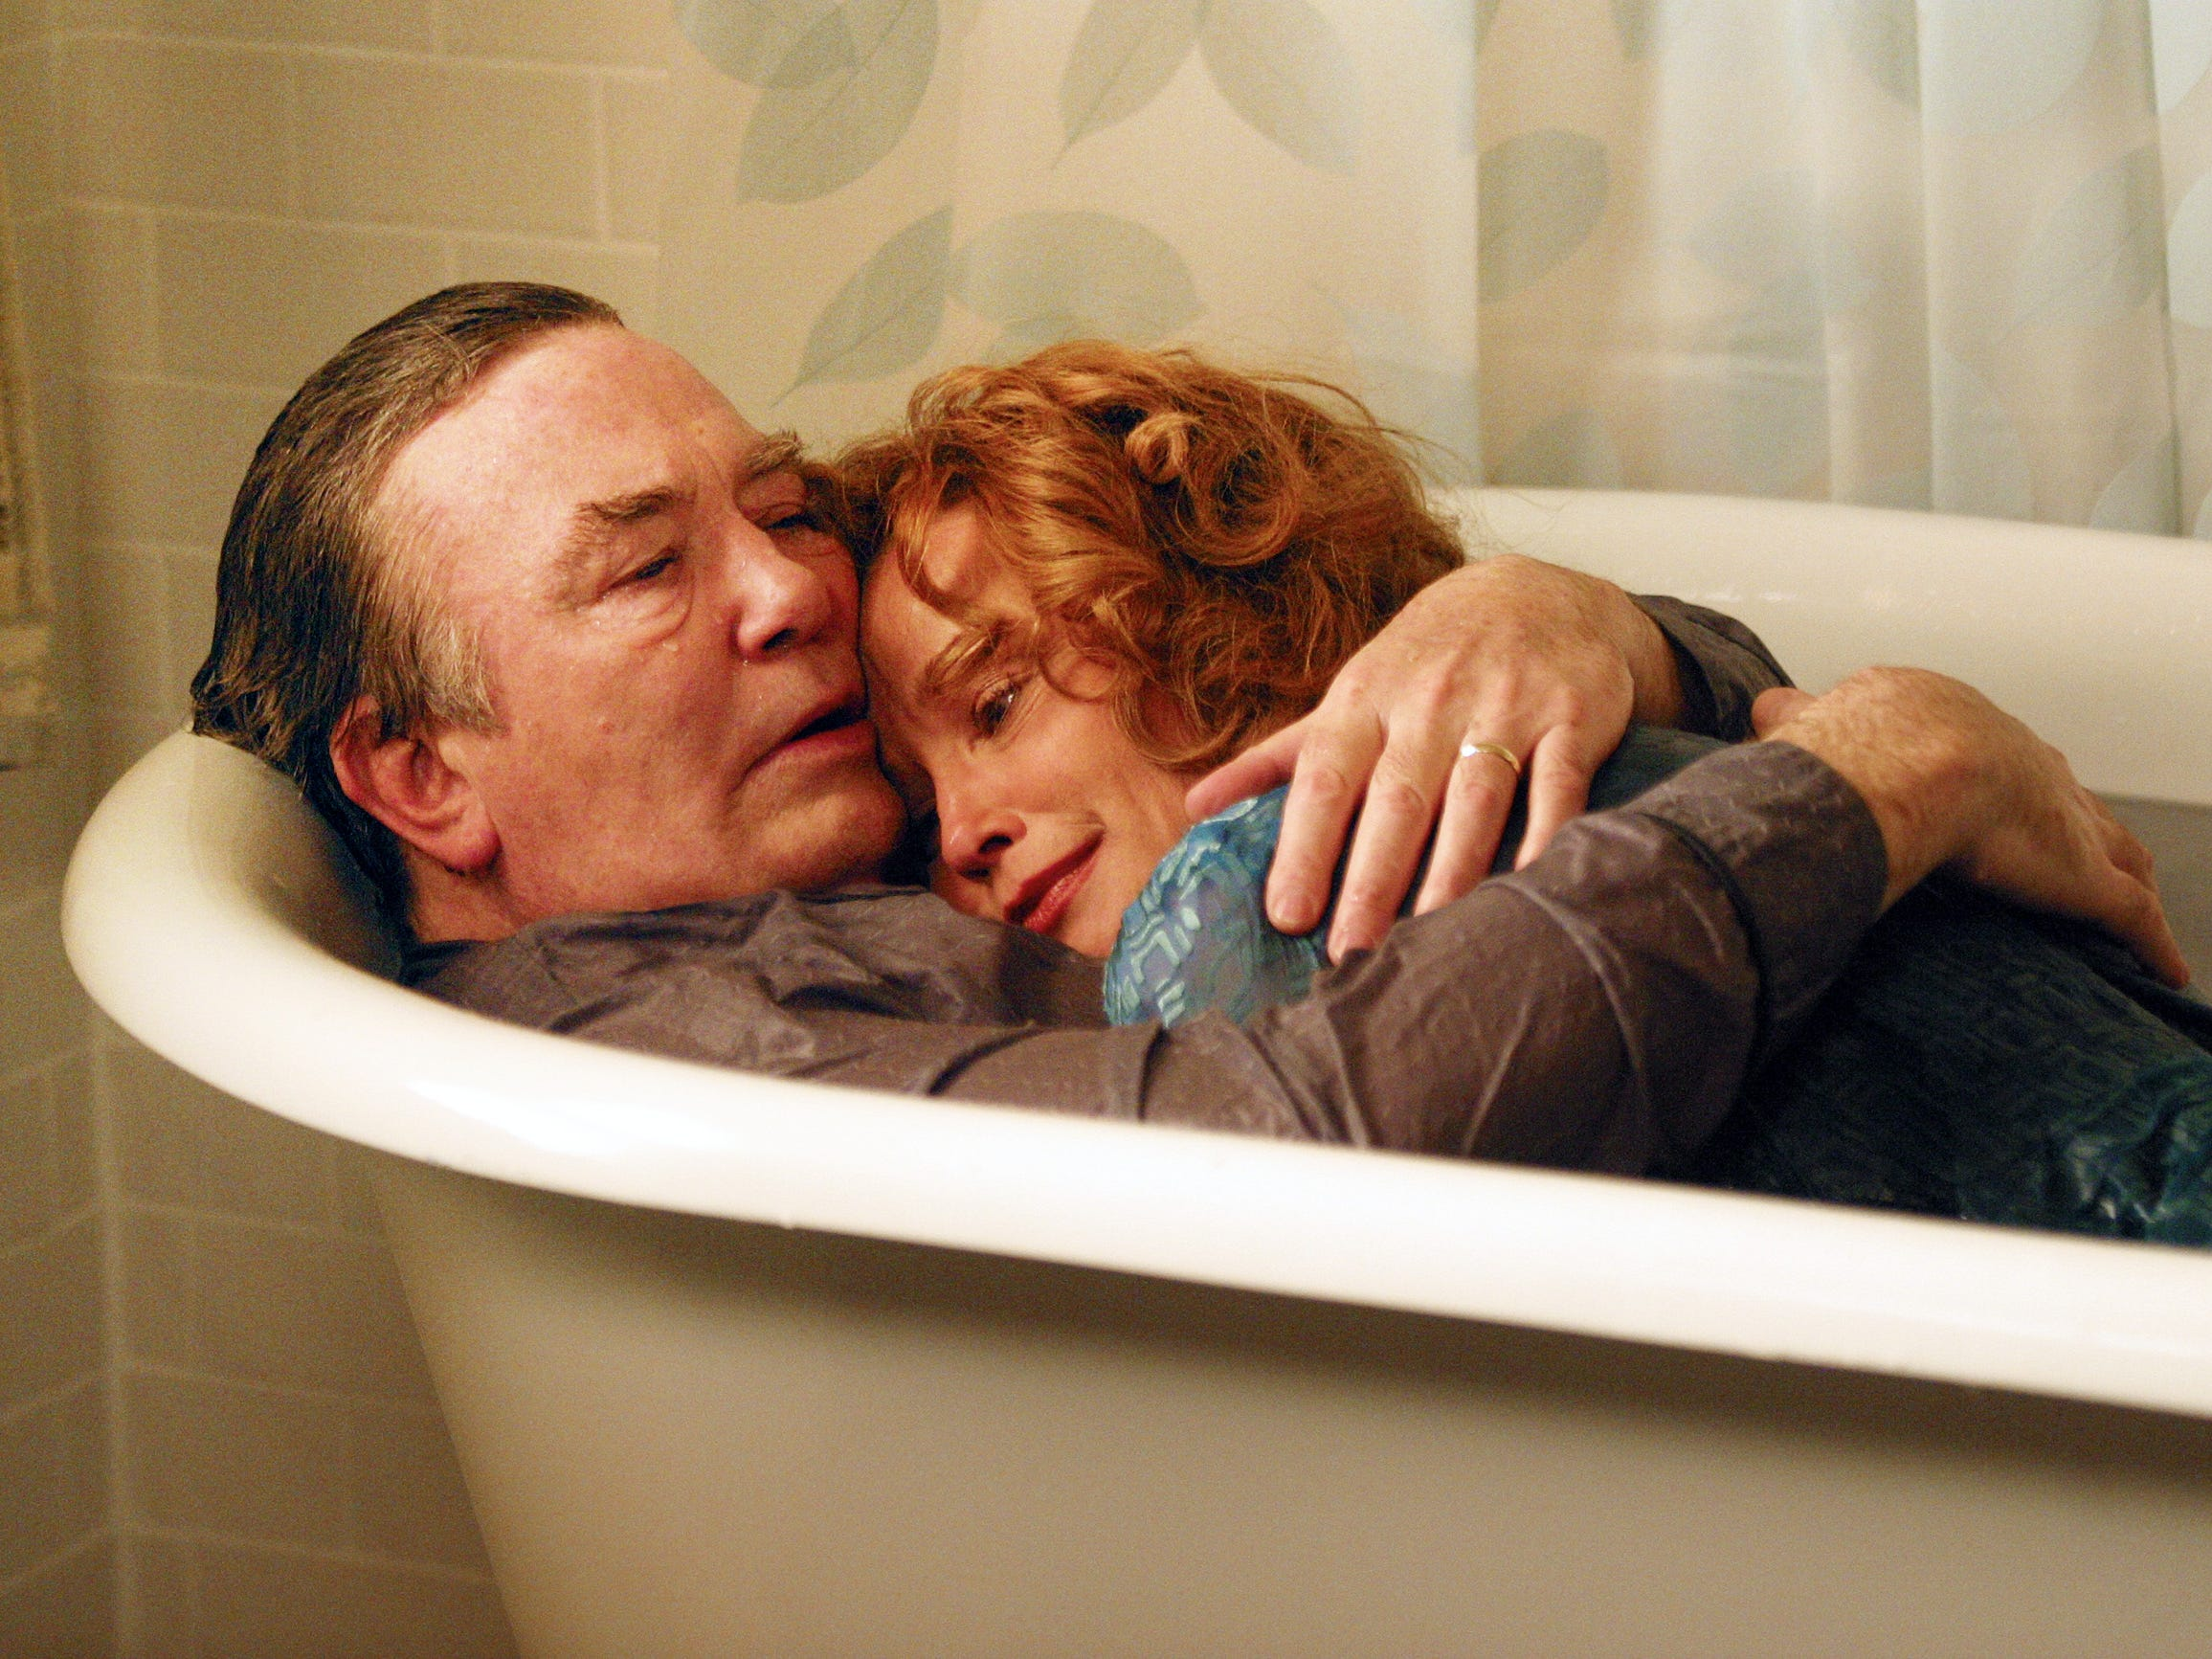 Albert Finney and Jessica Lange in a scene from the motion picture Big Fish.